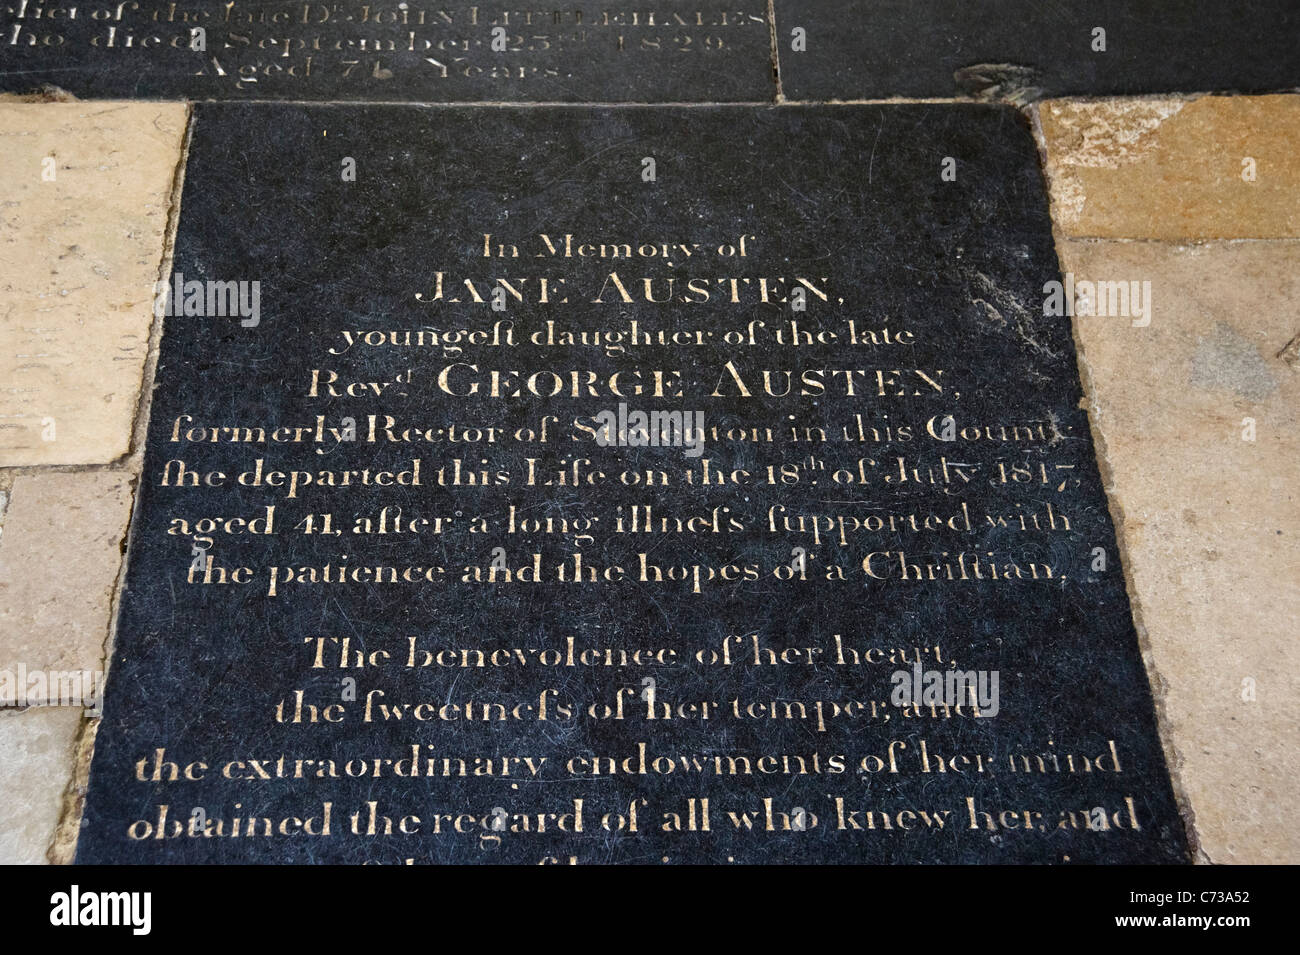 Grave of the novelist Jane Austen in the Nave of Winchester Cathedral, Winchester, Hampshire, England, UK Stock Photo